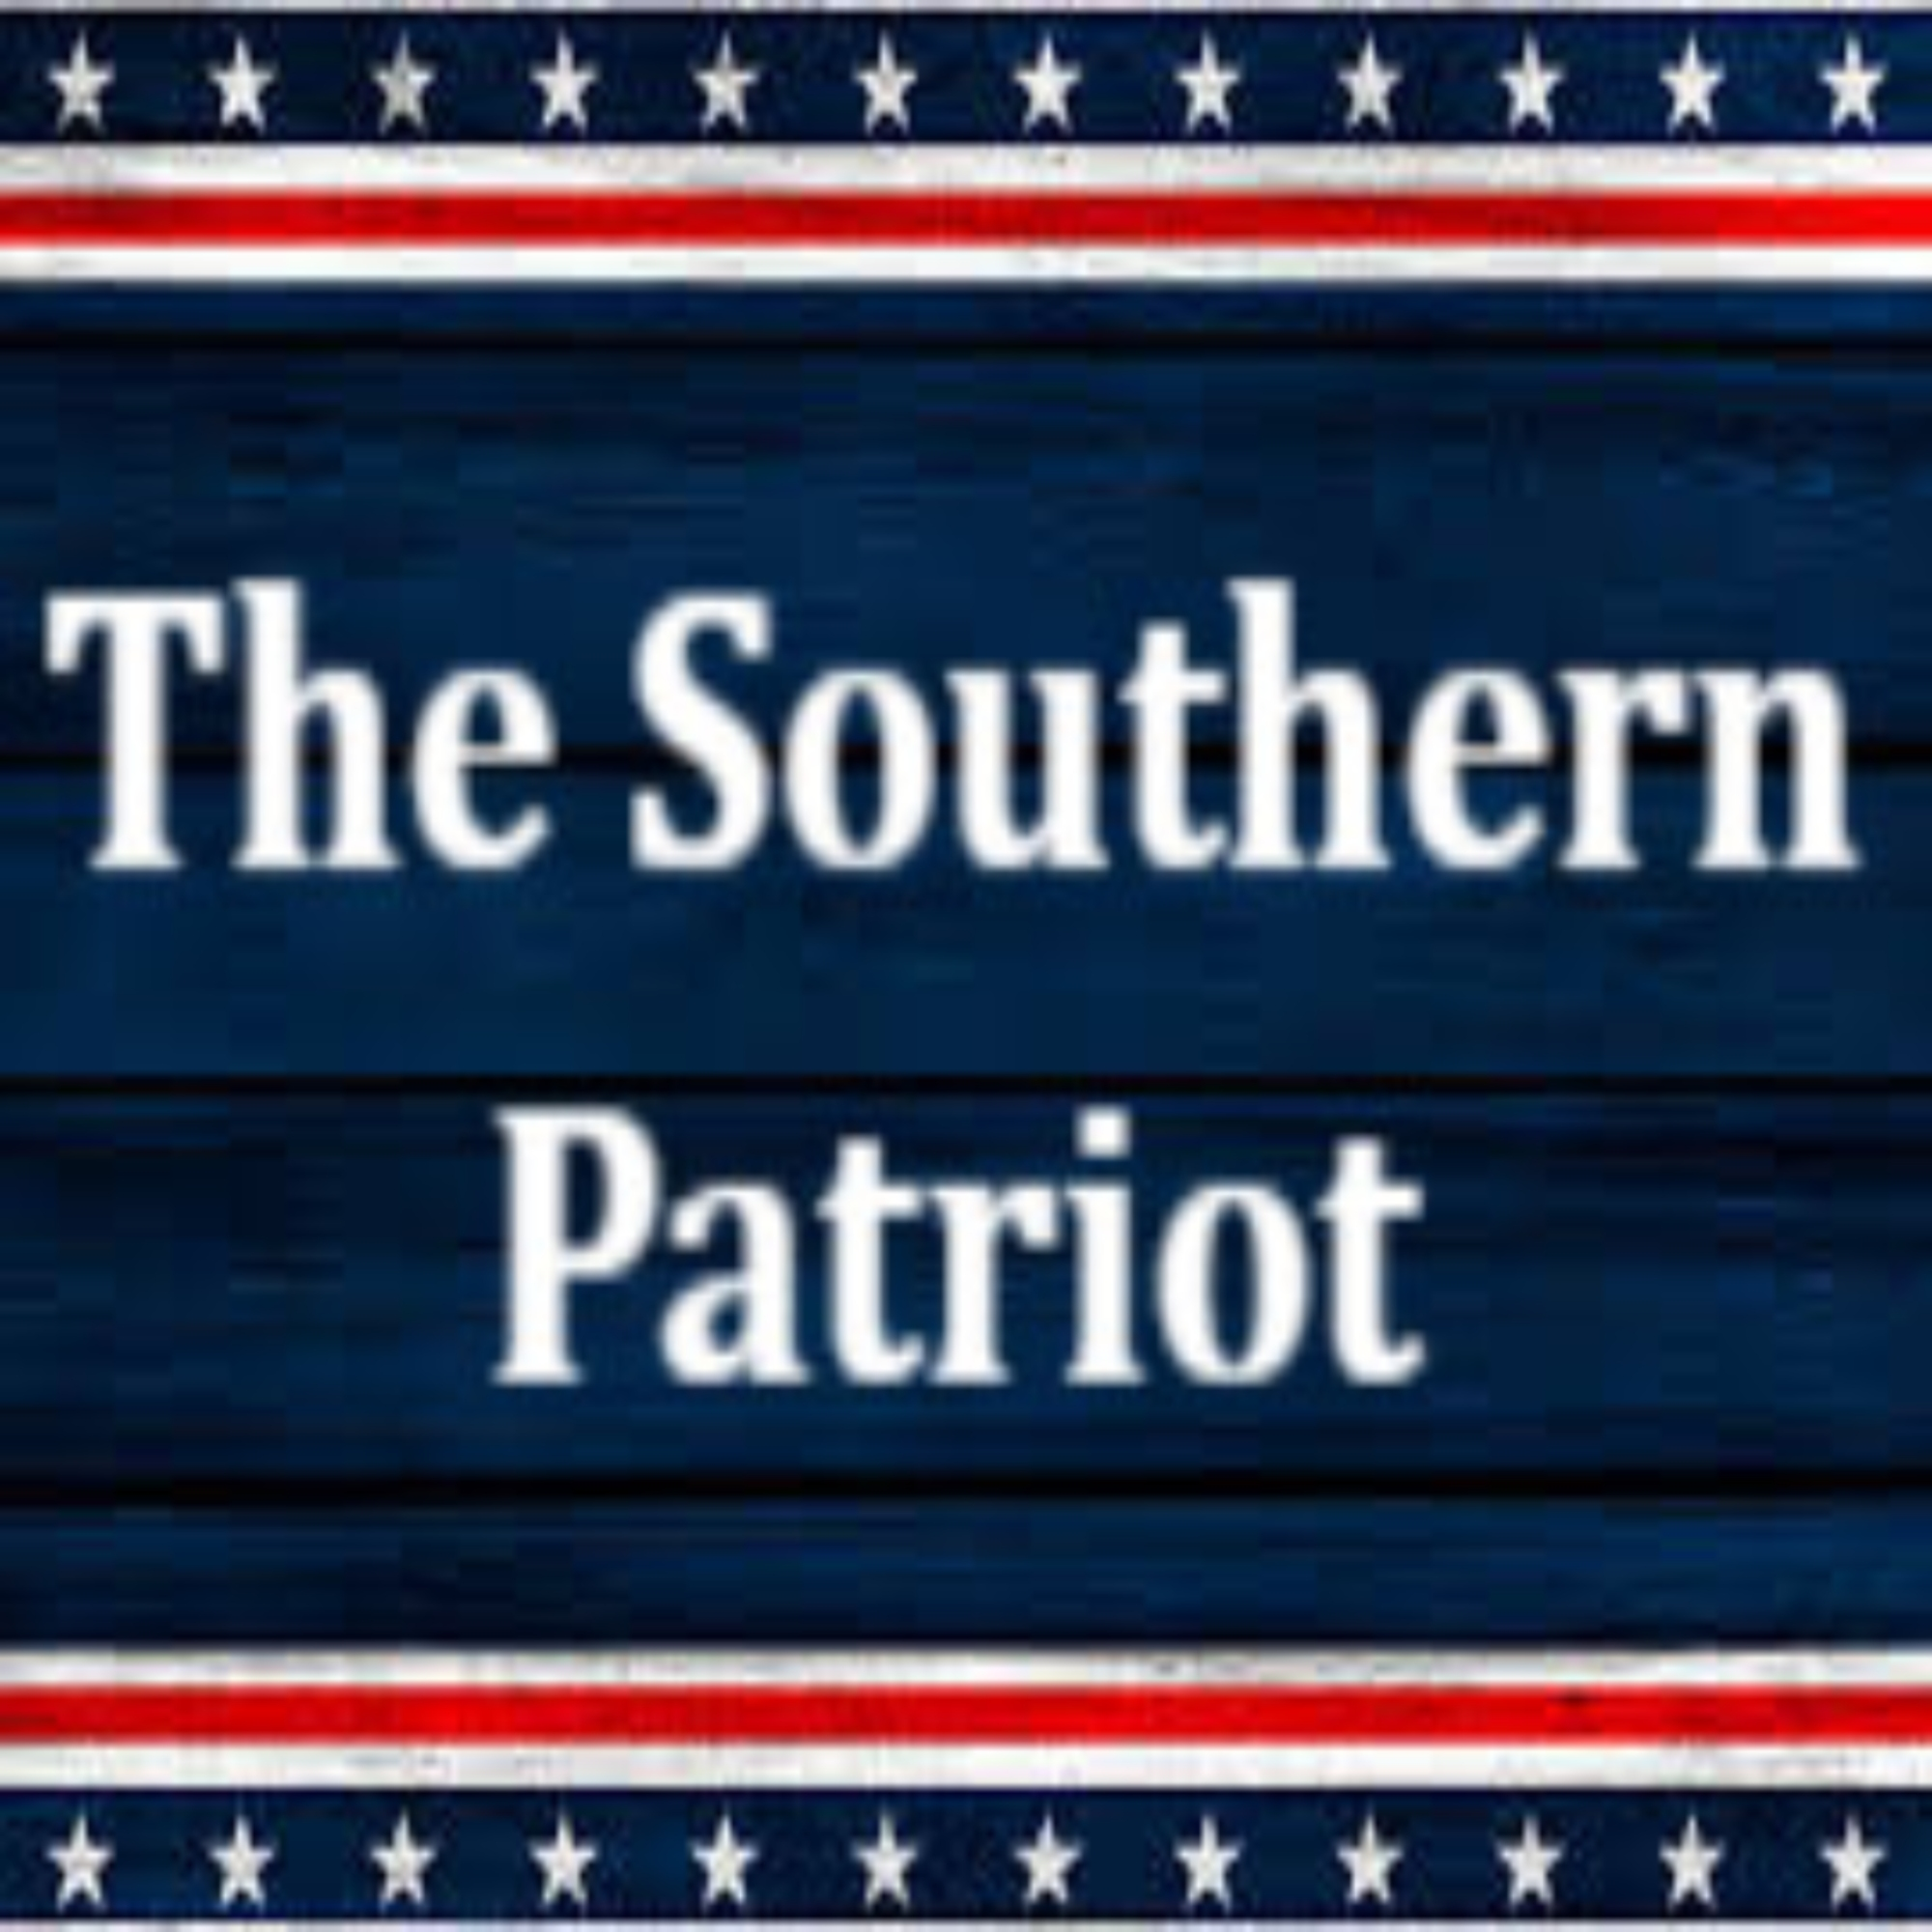 thesouthernpatriot